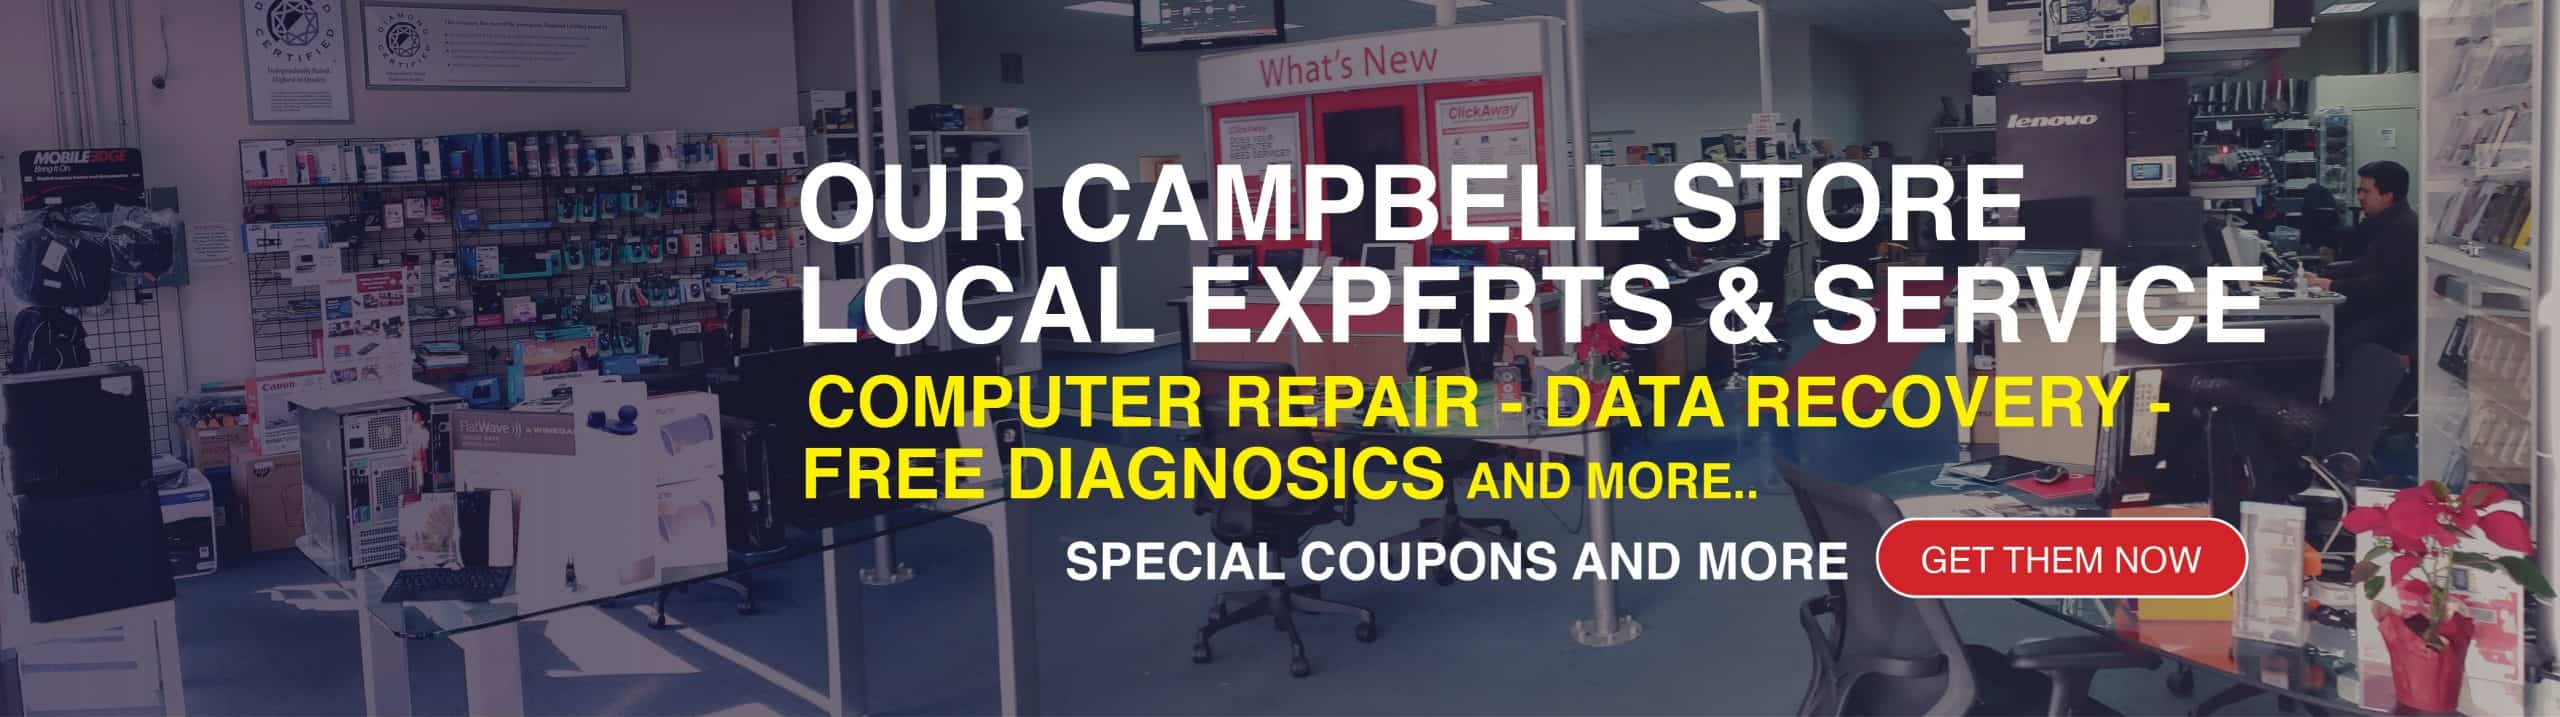 Campbell store local experts & service